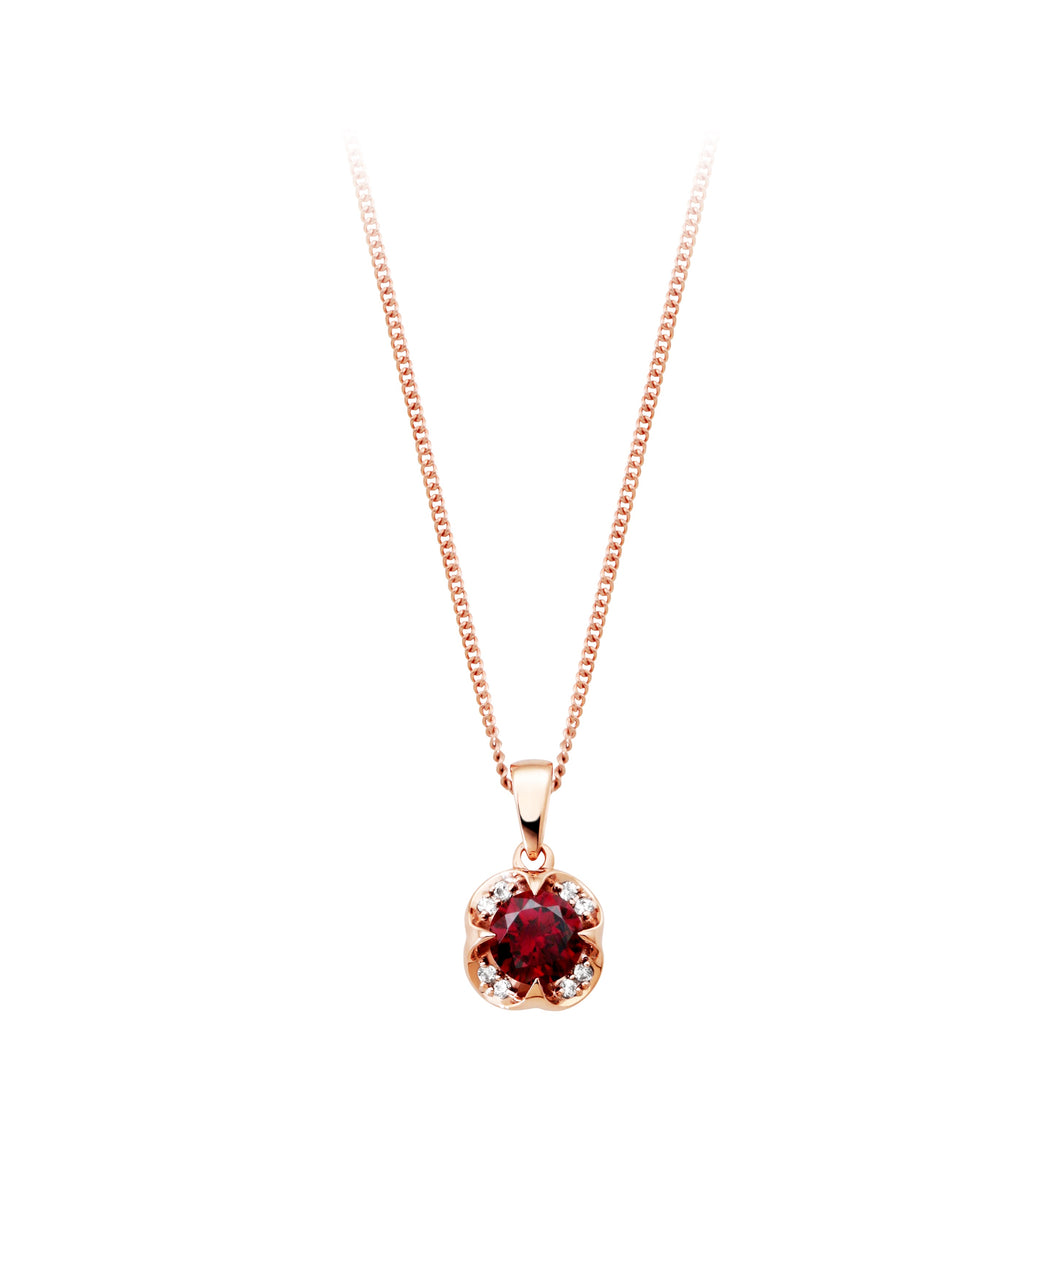 Genuine Rhodolite Garnet and Diamond Pendant  8=0.05cttw  10k Rose Gold